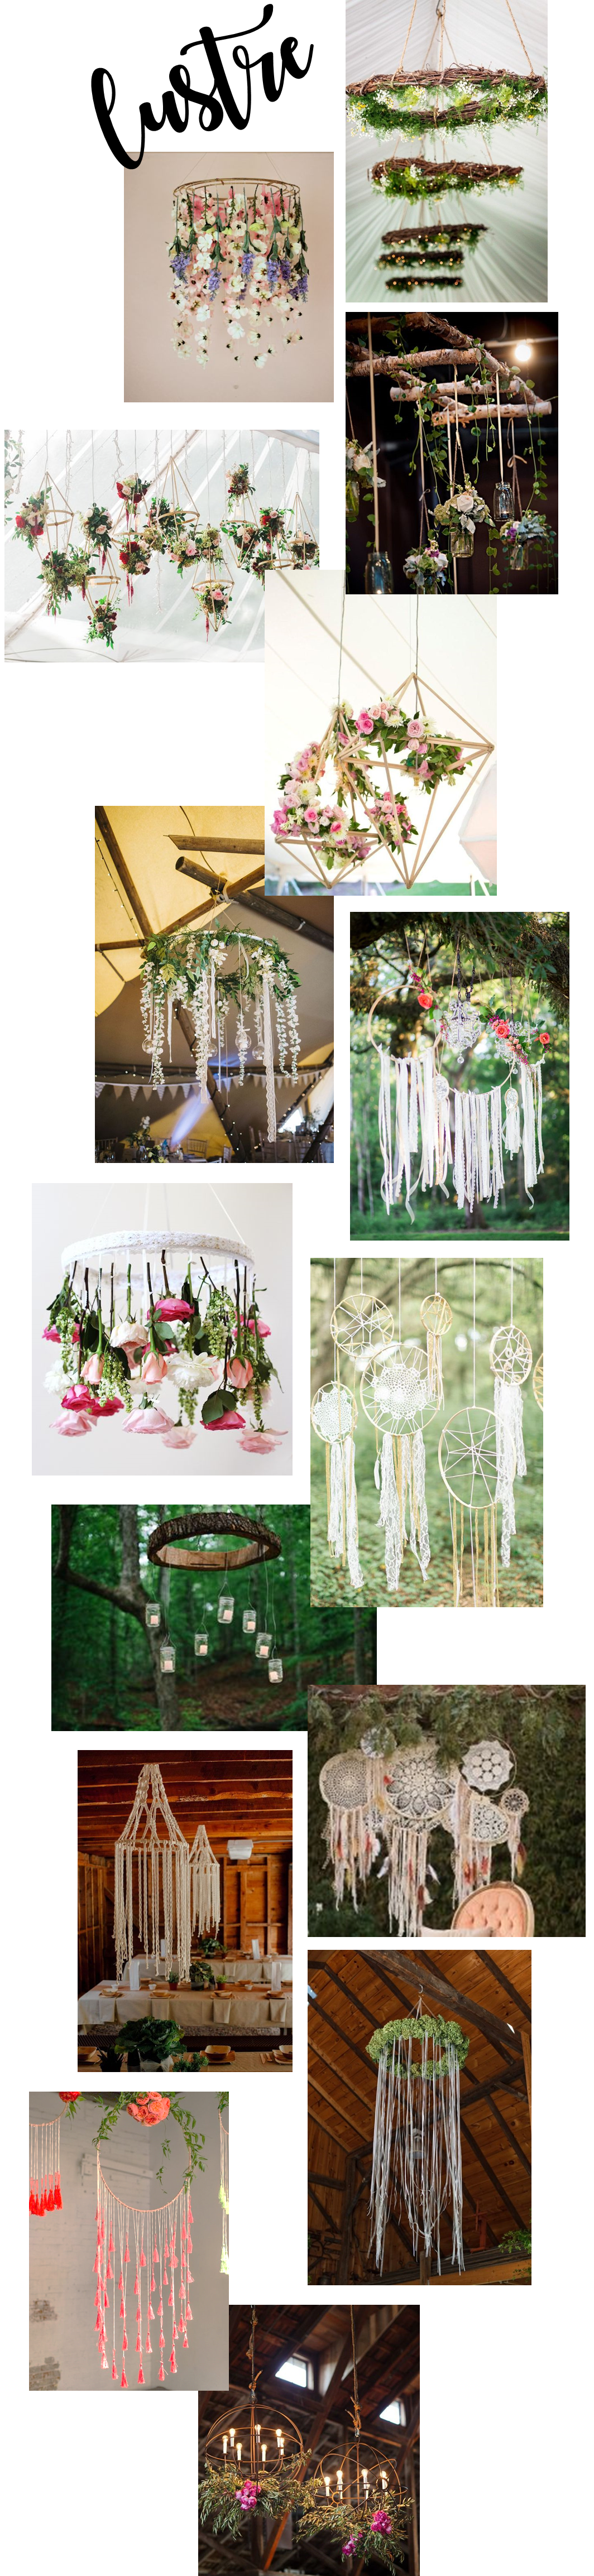 00000 WEDDING lustre